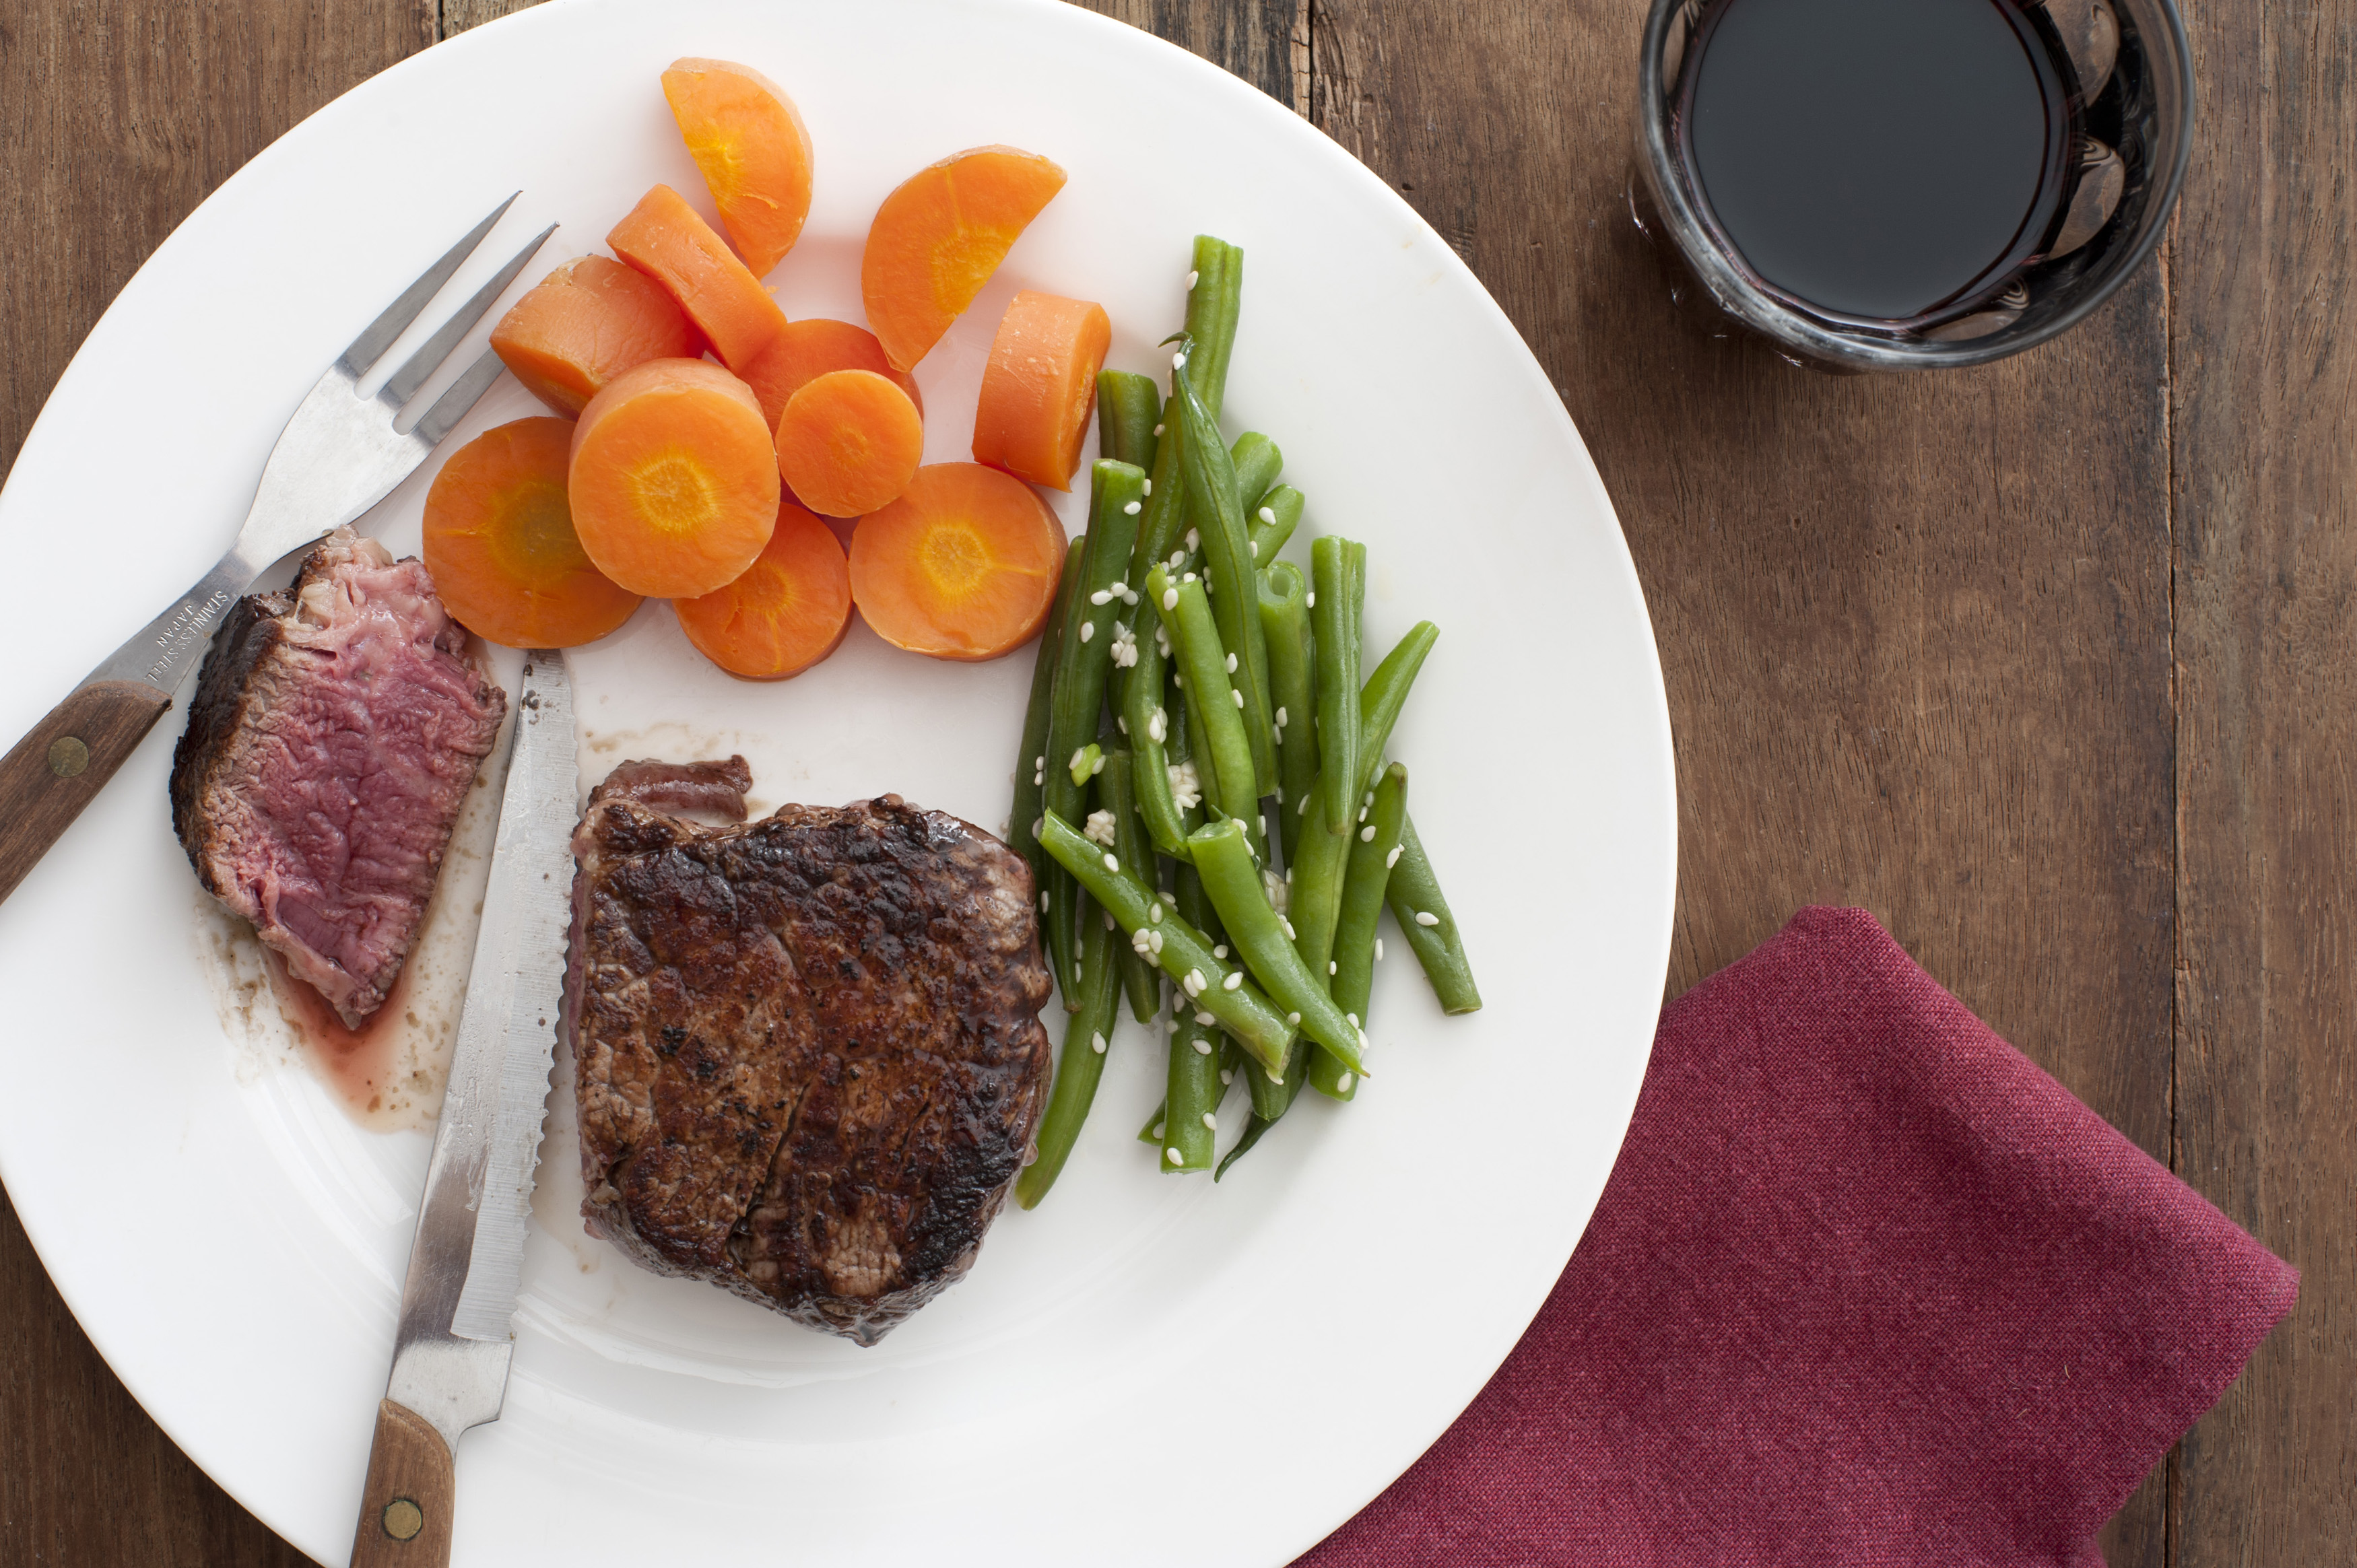 Steak meal with fresh steamed vegetables, carrots and fresh green string or runner beans, viewed high angle with the steak cut through to show the tender juicy meat